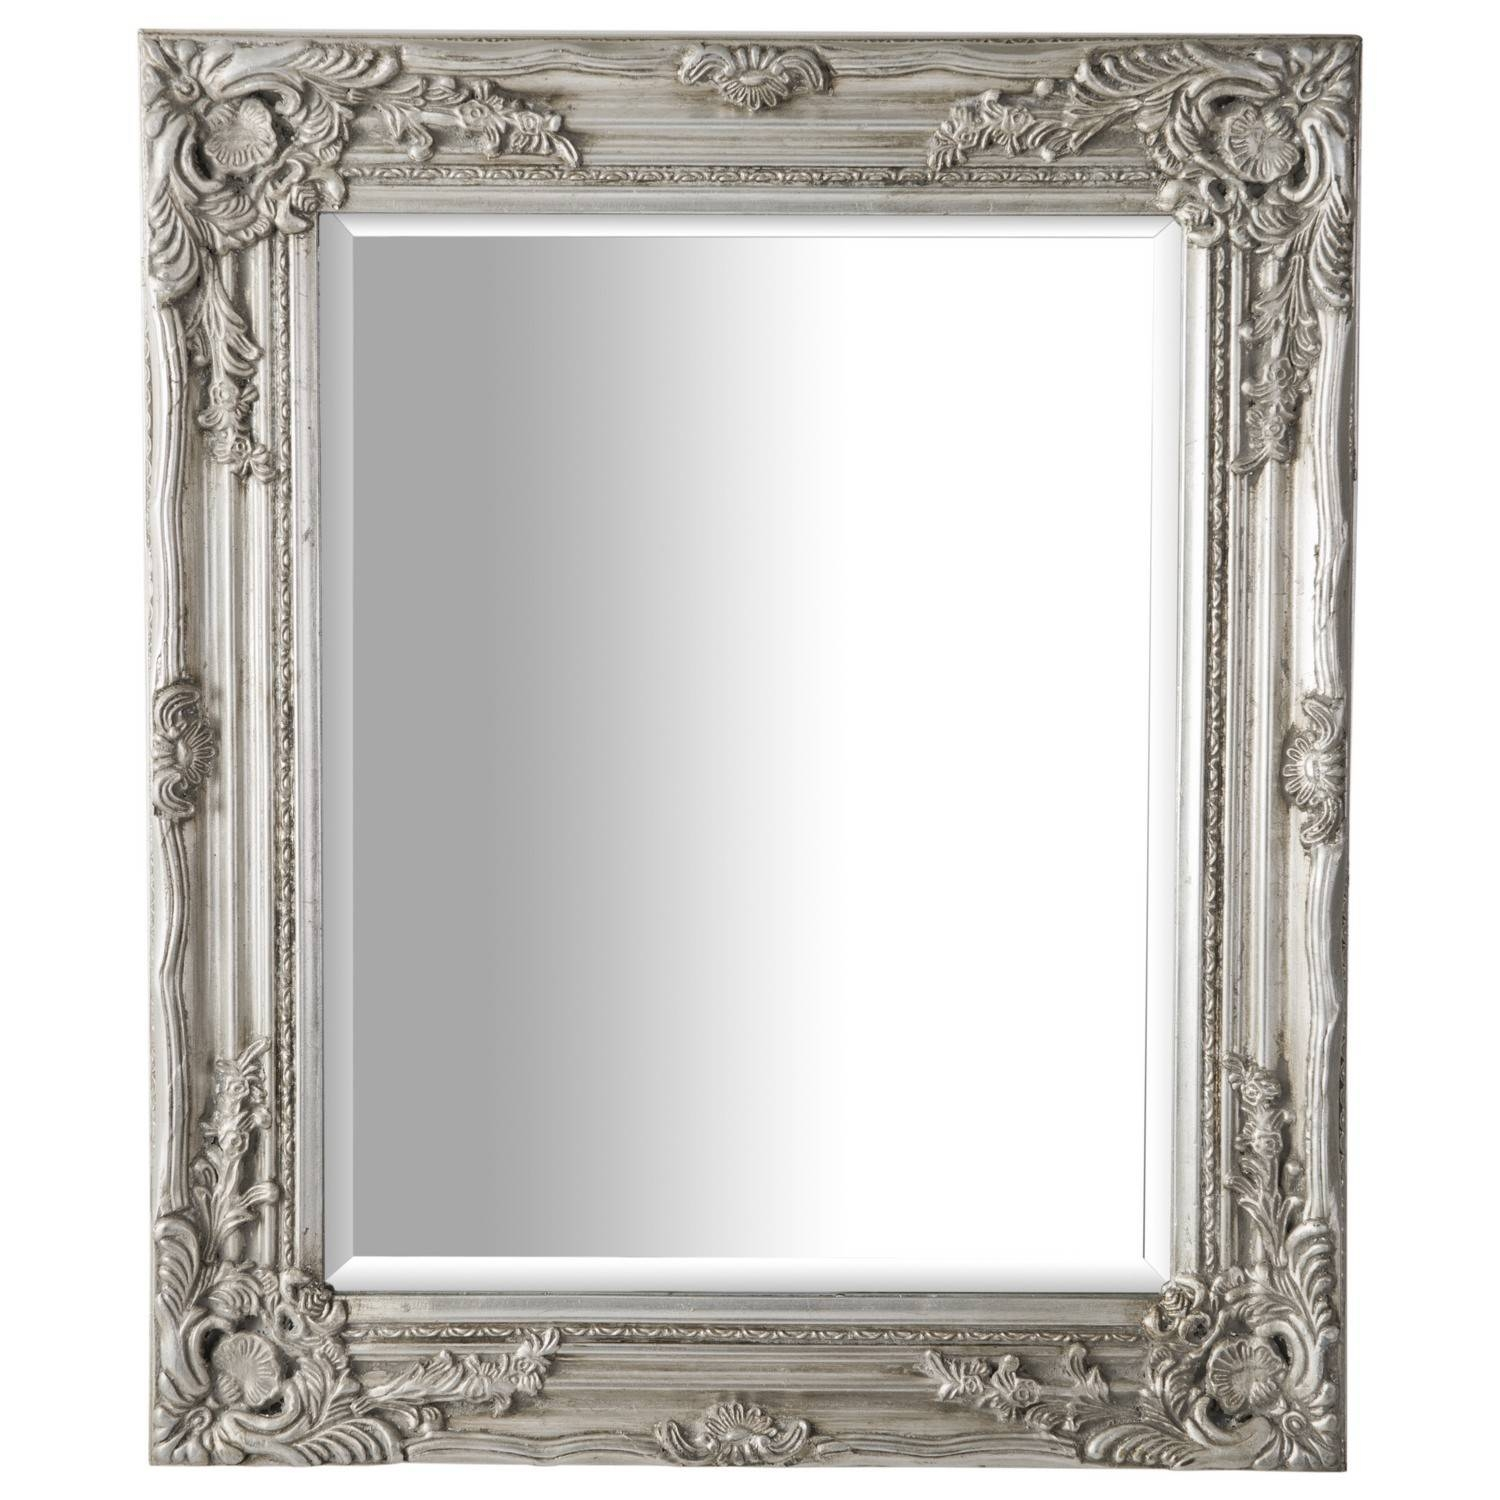 Antique Ornate Mirror Silver with regard to Ornate Mirrors (Image 6 of 25)